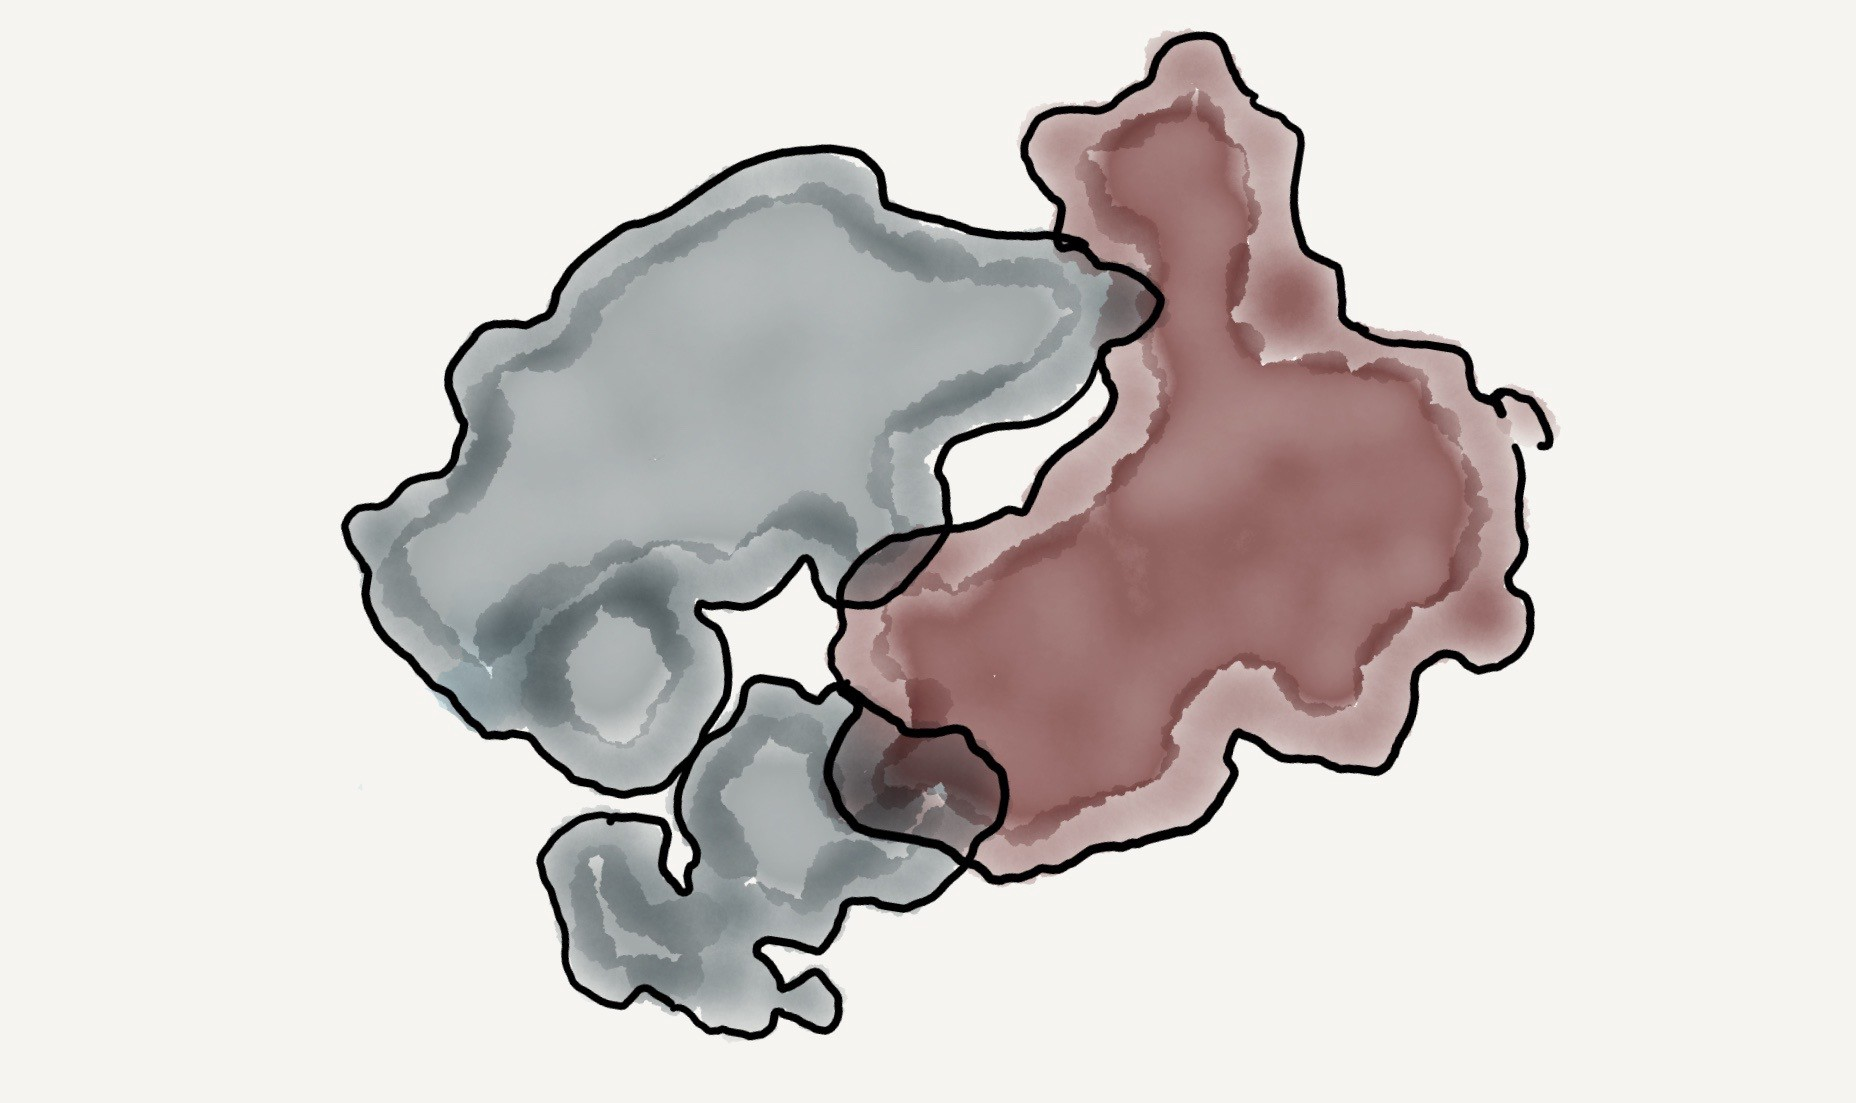 A water color illustration of the Danish geographic silhouette wrestling the Chinese geographic silhouette.